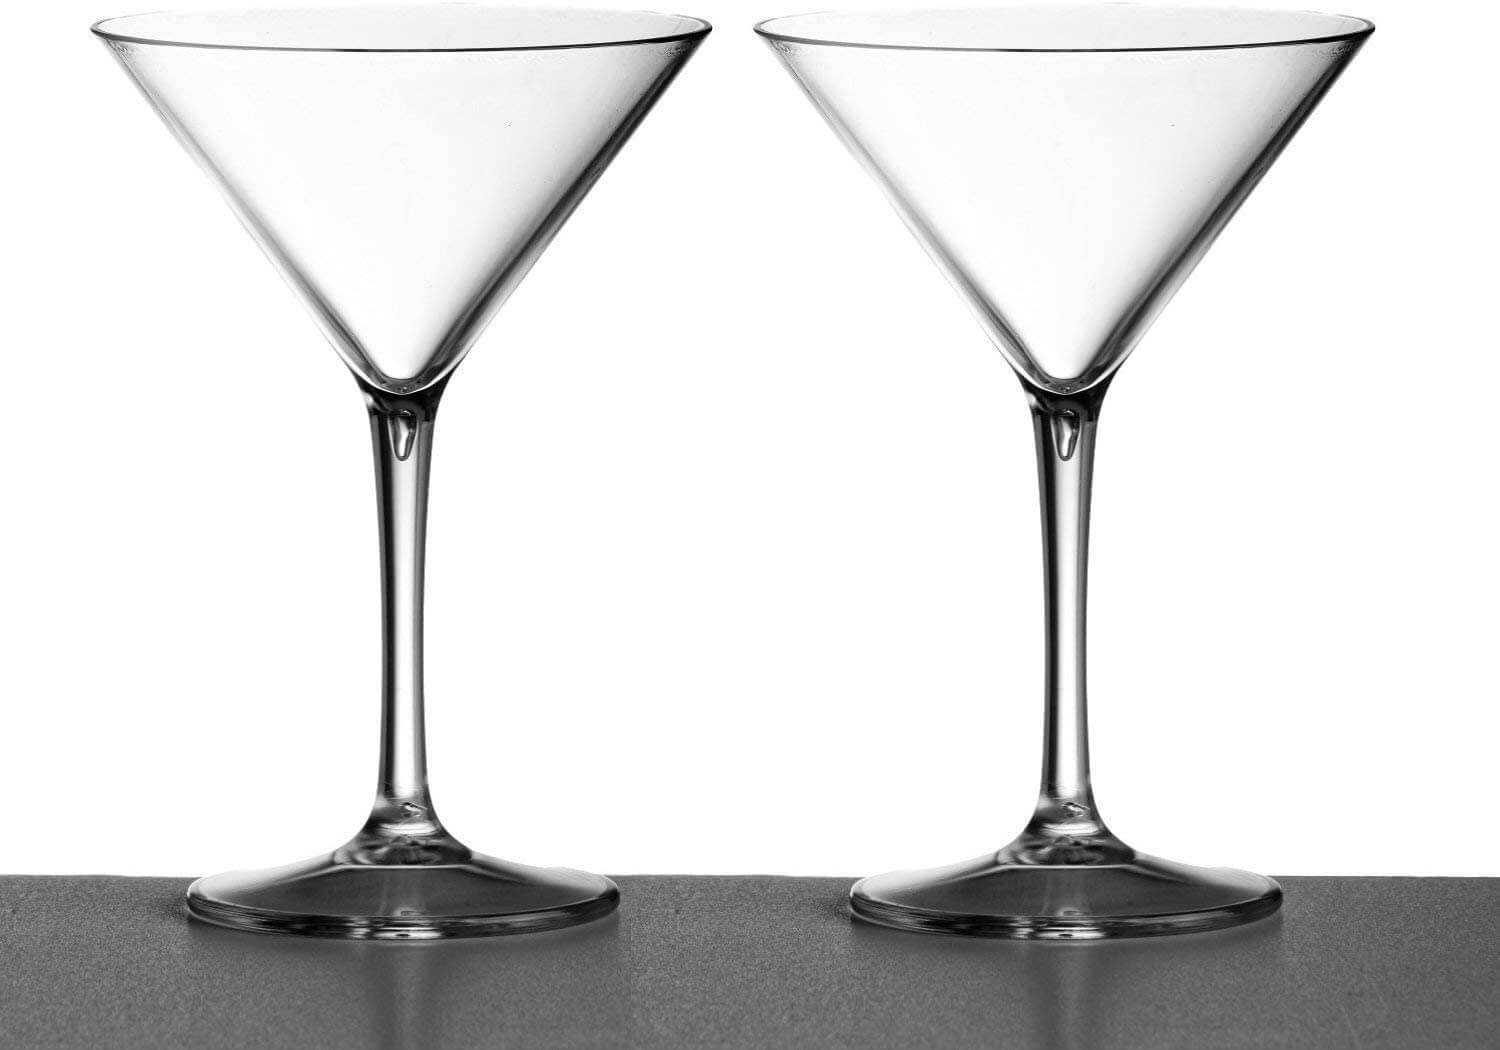 Unbreakable-polycarbonate-martini-glasses-perfect-for-picnics